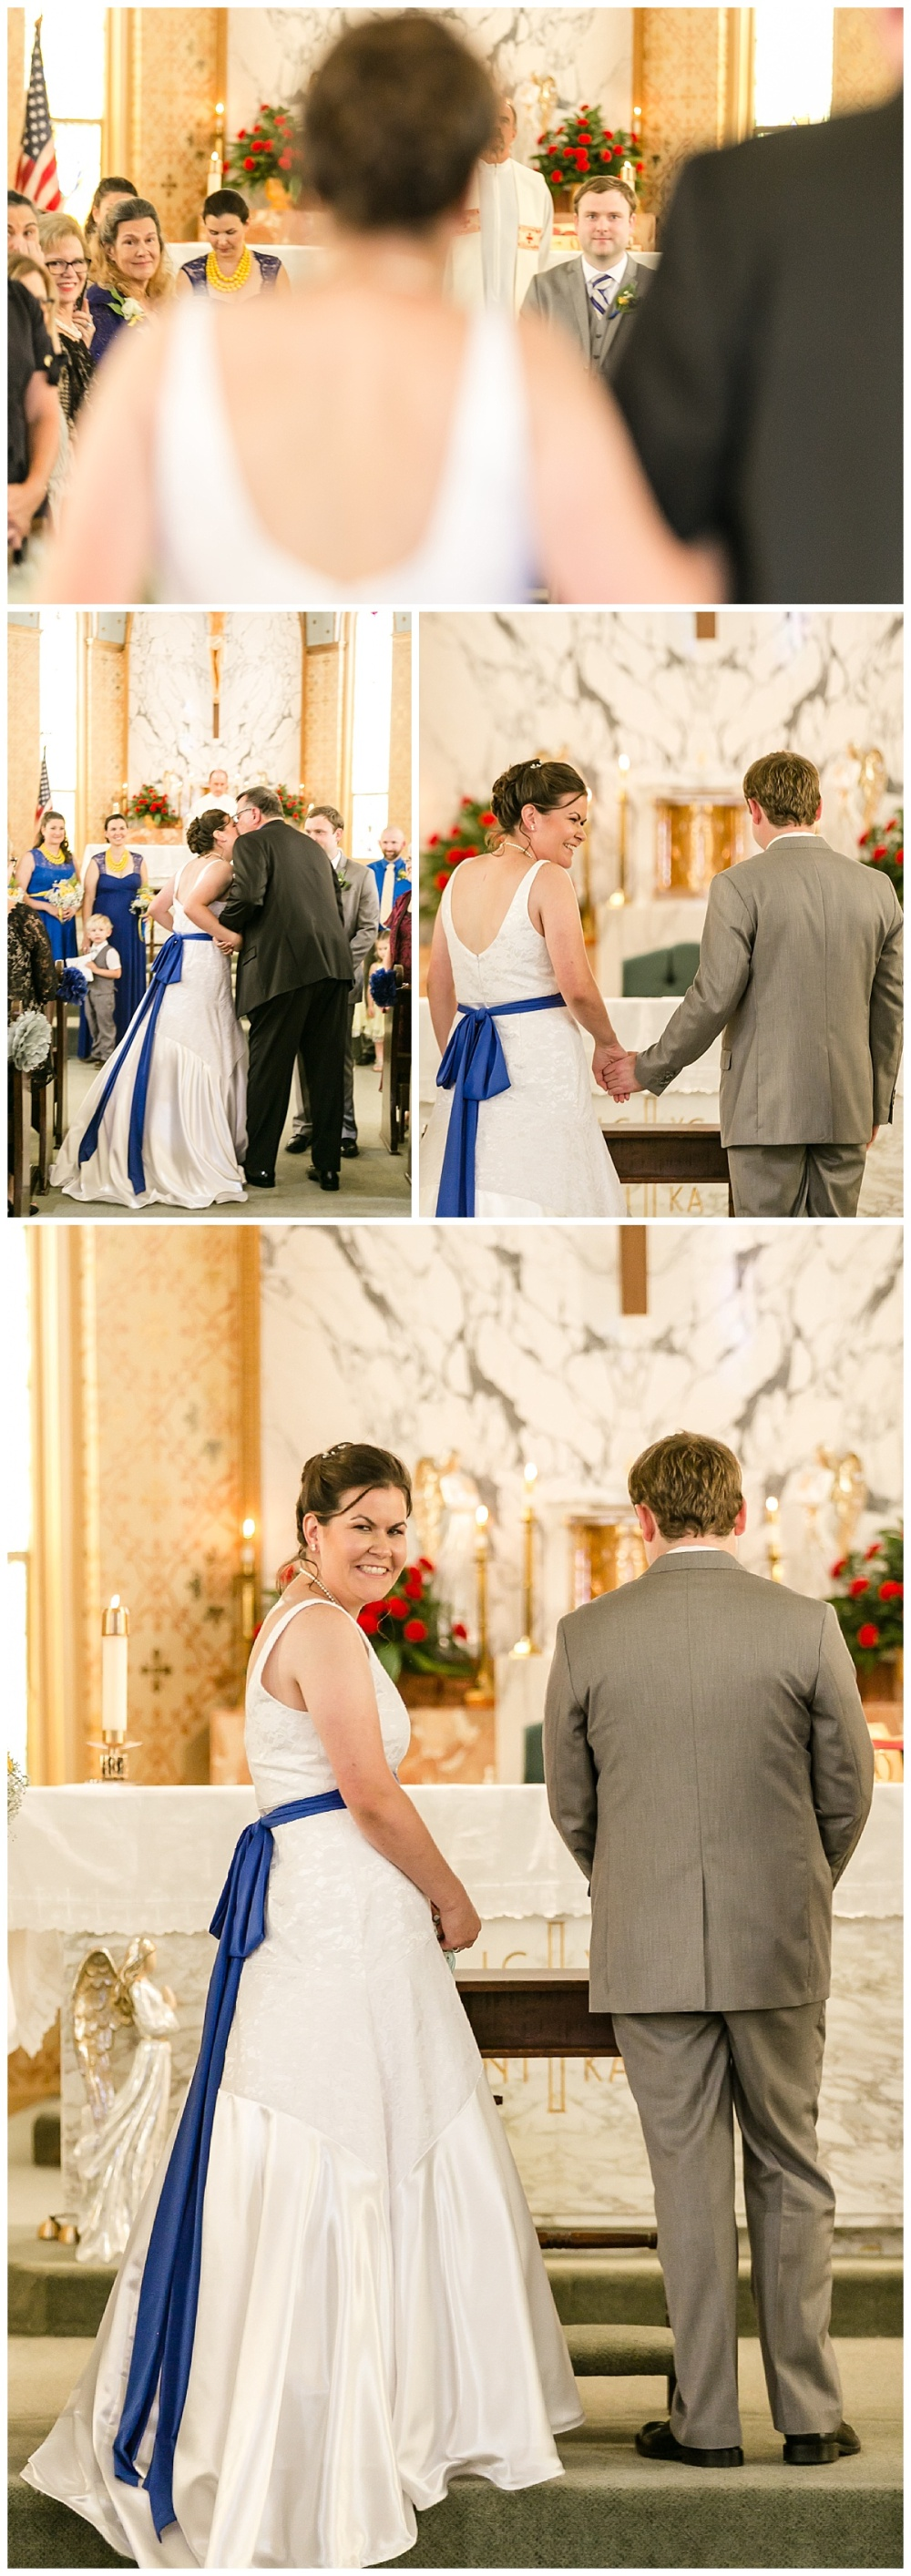 Texas-Wedding-Photographer-La-Coste-Our-Lady-Of-Grace-Church-Bride-Groom-Lego-Theme-Carly-Barton-Photography_0051.jpg